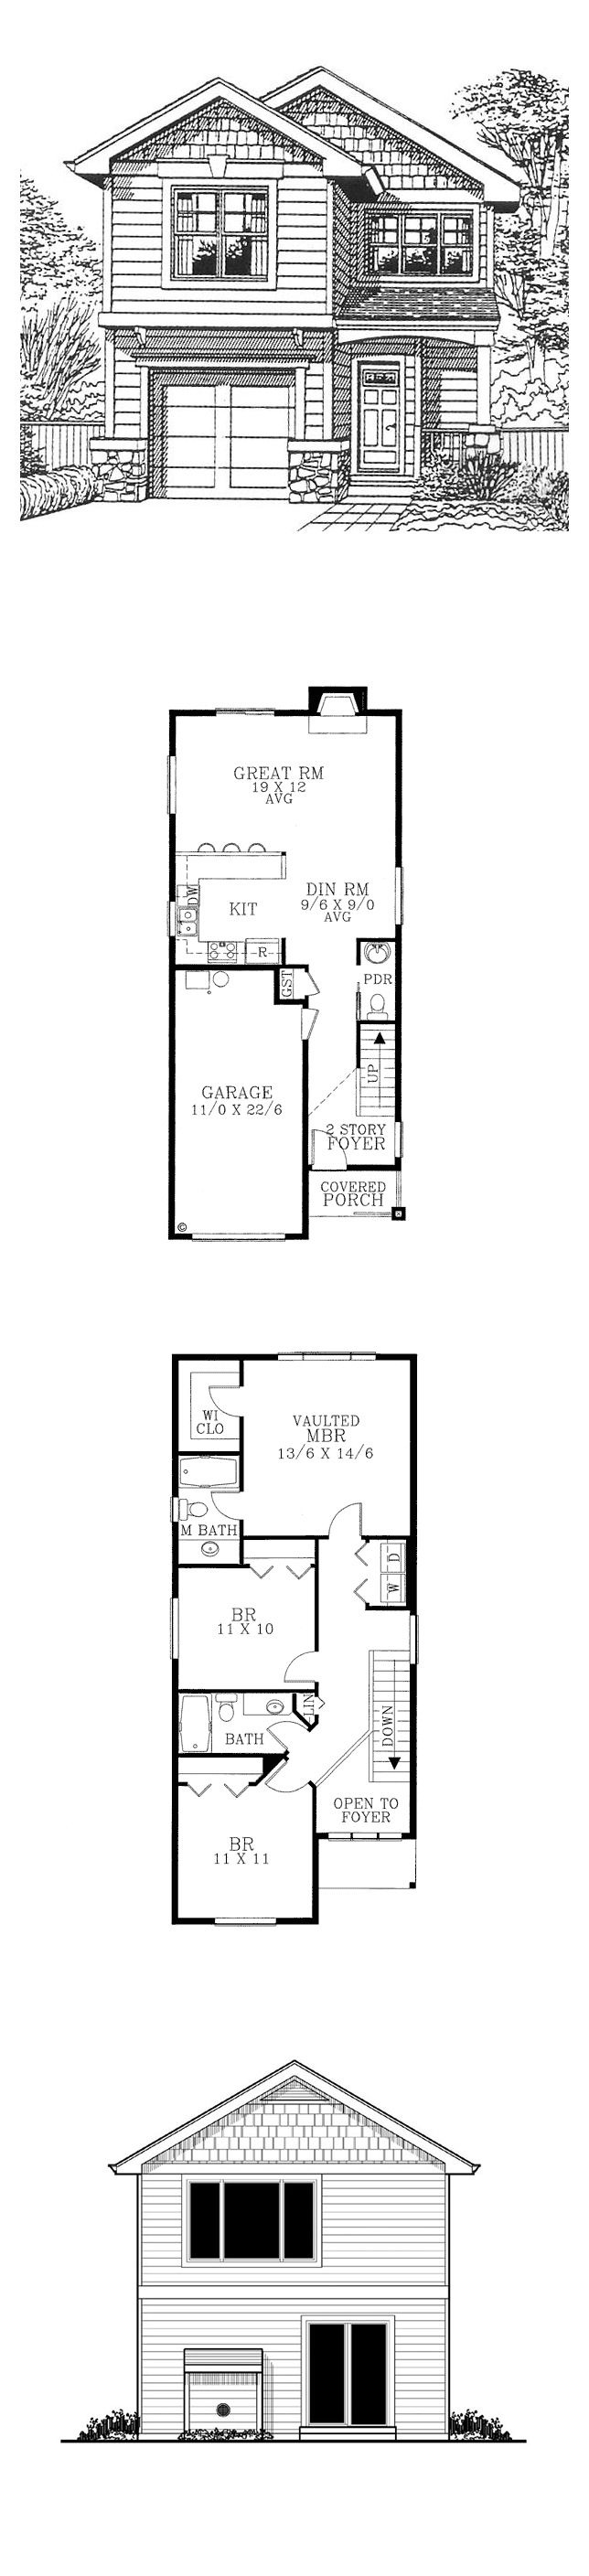 Narrow lot home plan 91470 total living area 1400 sq for Lot plan search